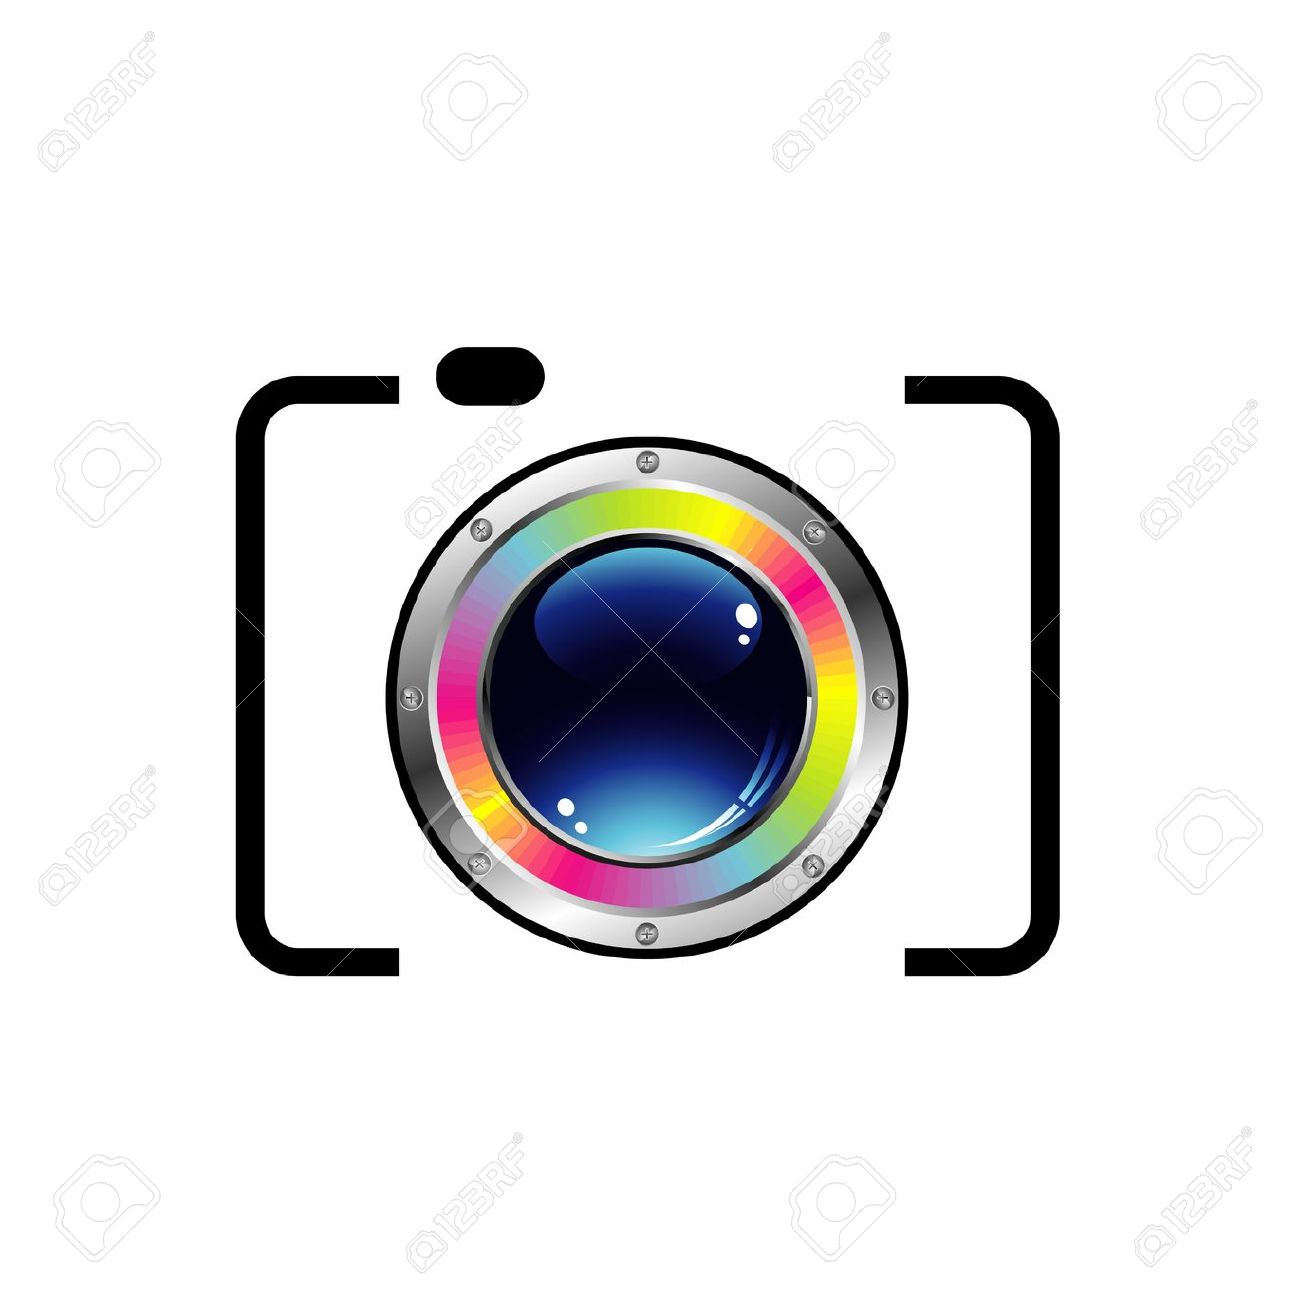 Digital Camera Royalty Free Cliparts, Vectors, And Stock.